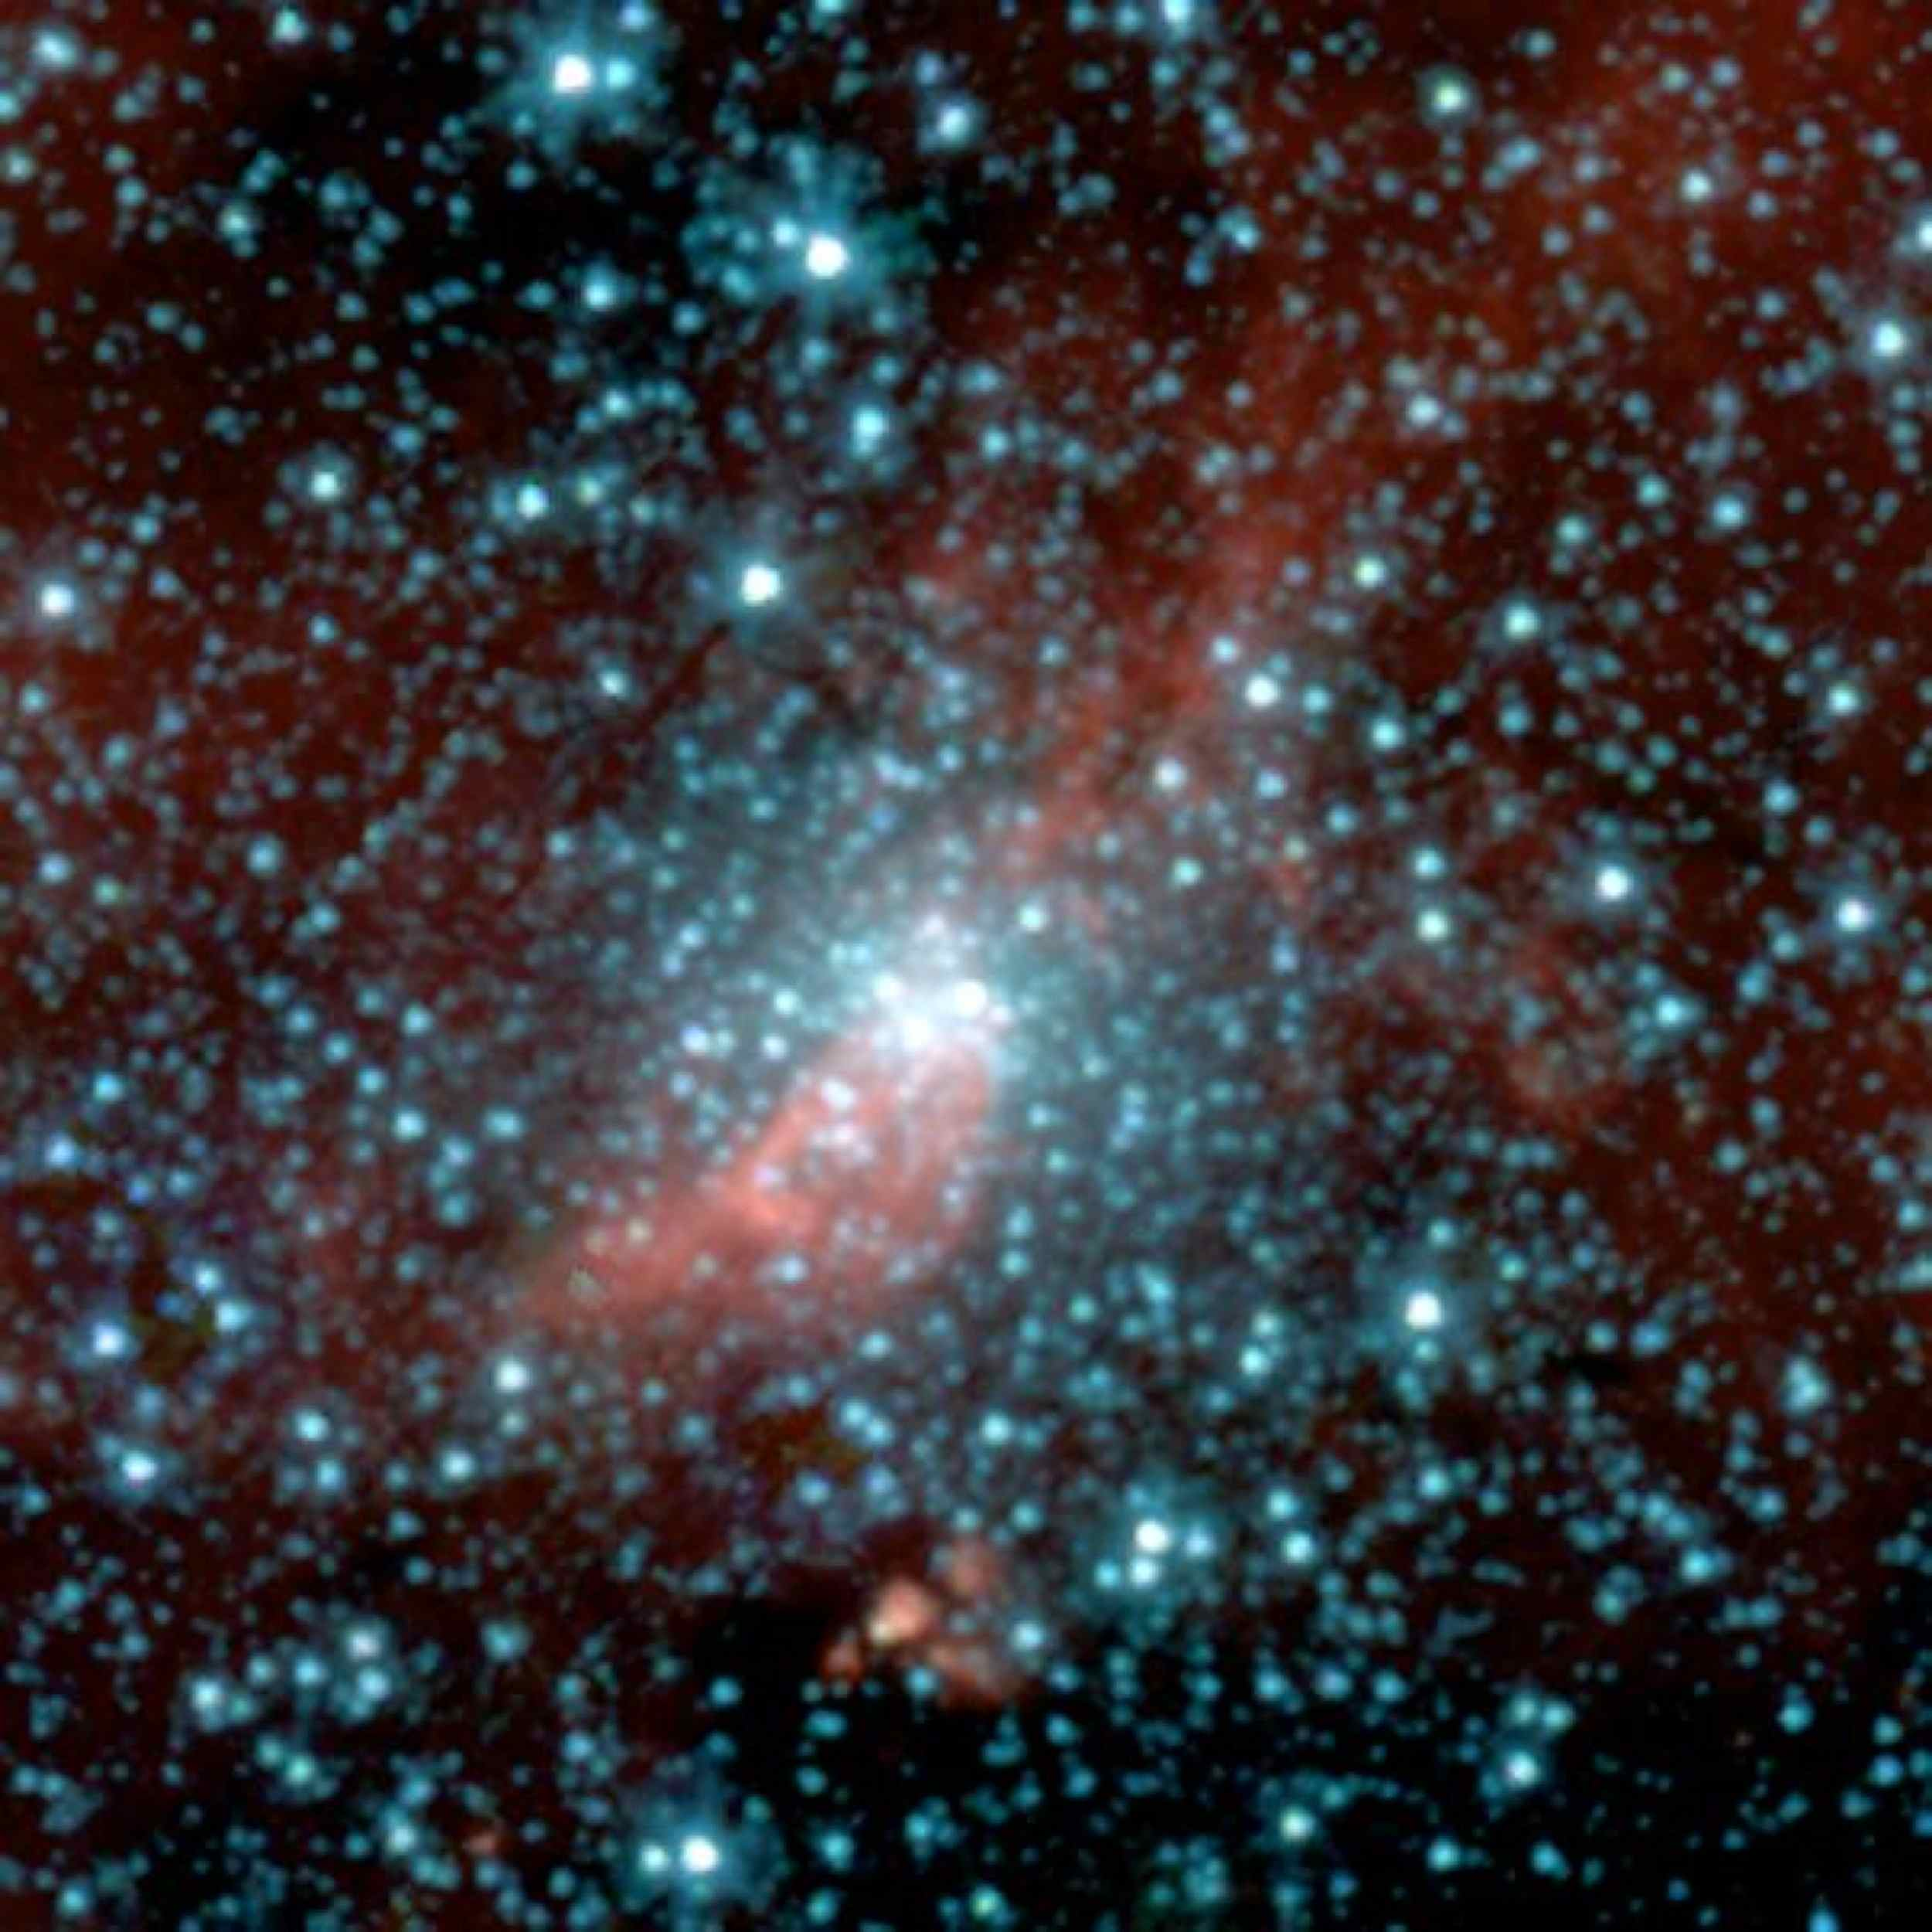 This false-color image taken by NASA's Spitzer Space Telescope shows a globular cluster previously hidden in the dusty plane of our Milky Way galaxy. Globular clusters are compact bundles of old stars that date back to the birth of our galaxy.